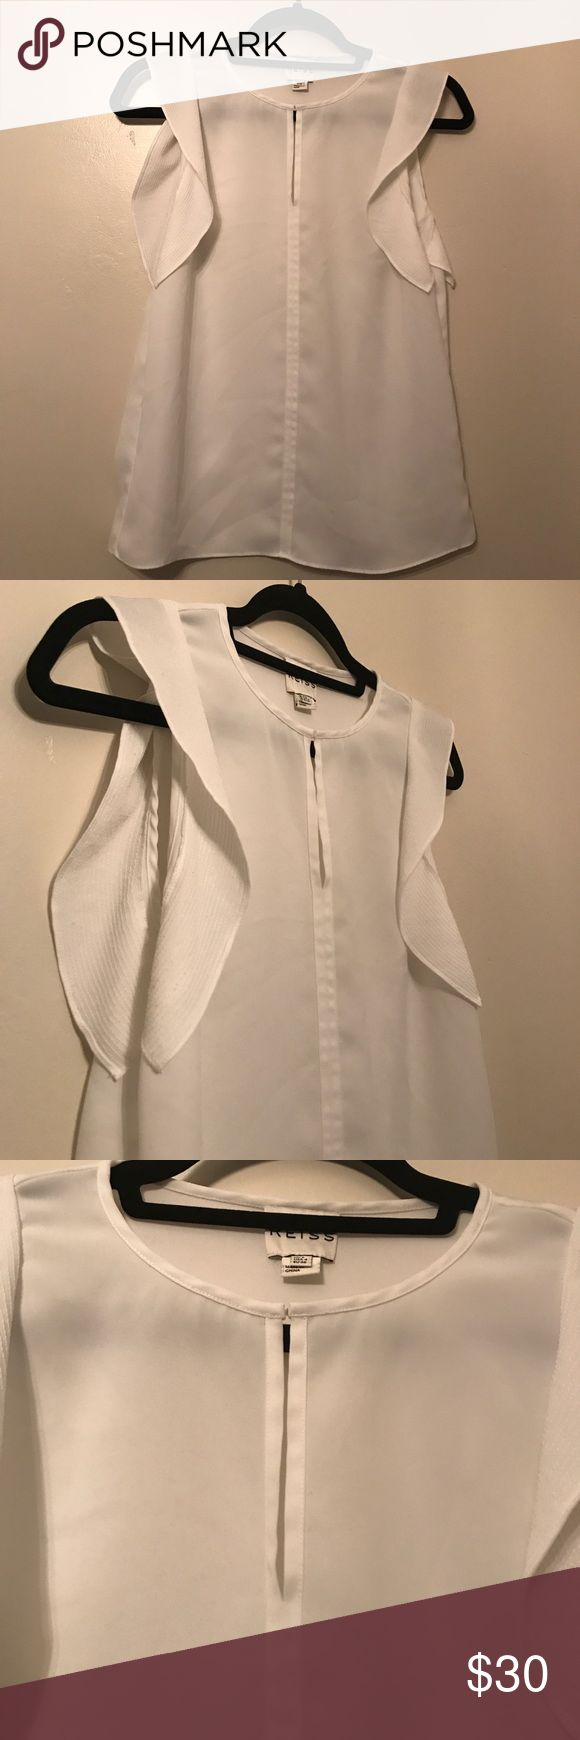 REISS BLOUSE REISS SLEEVELESS BLOUSE Reiss Tops Blouses